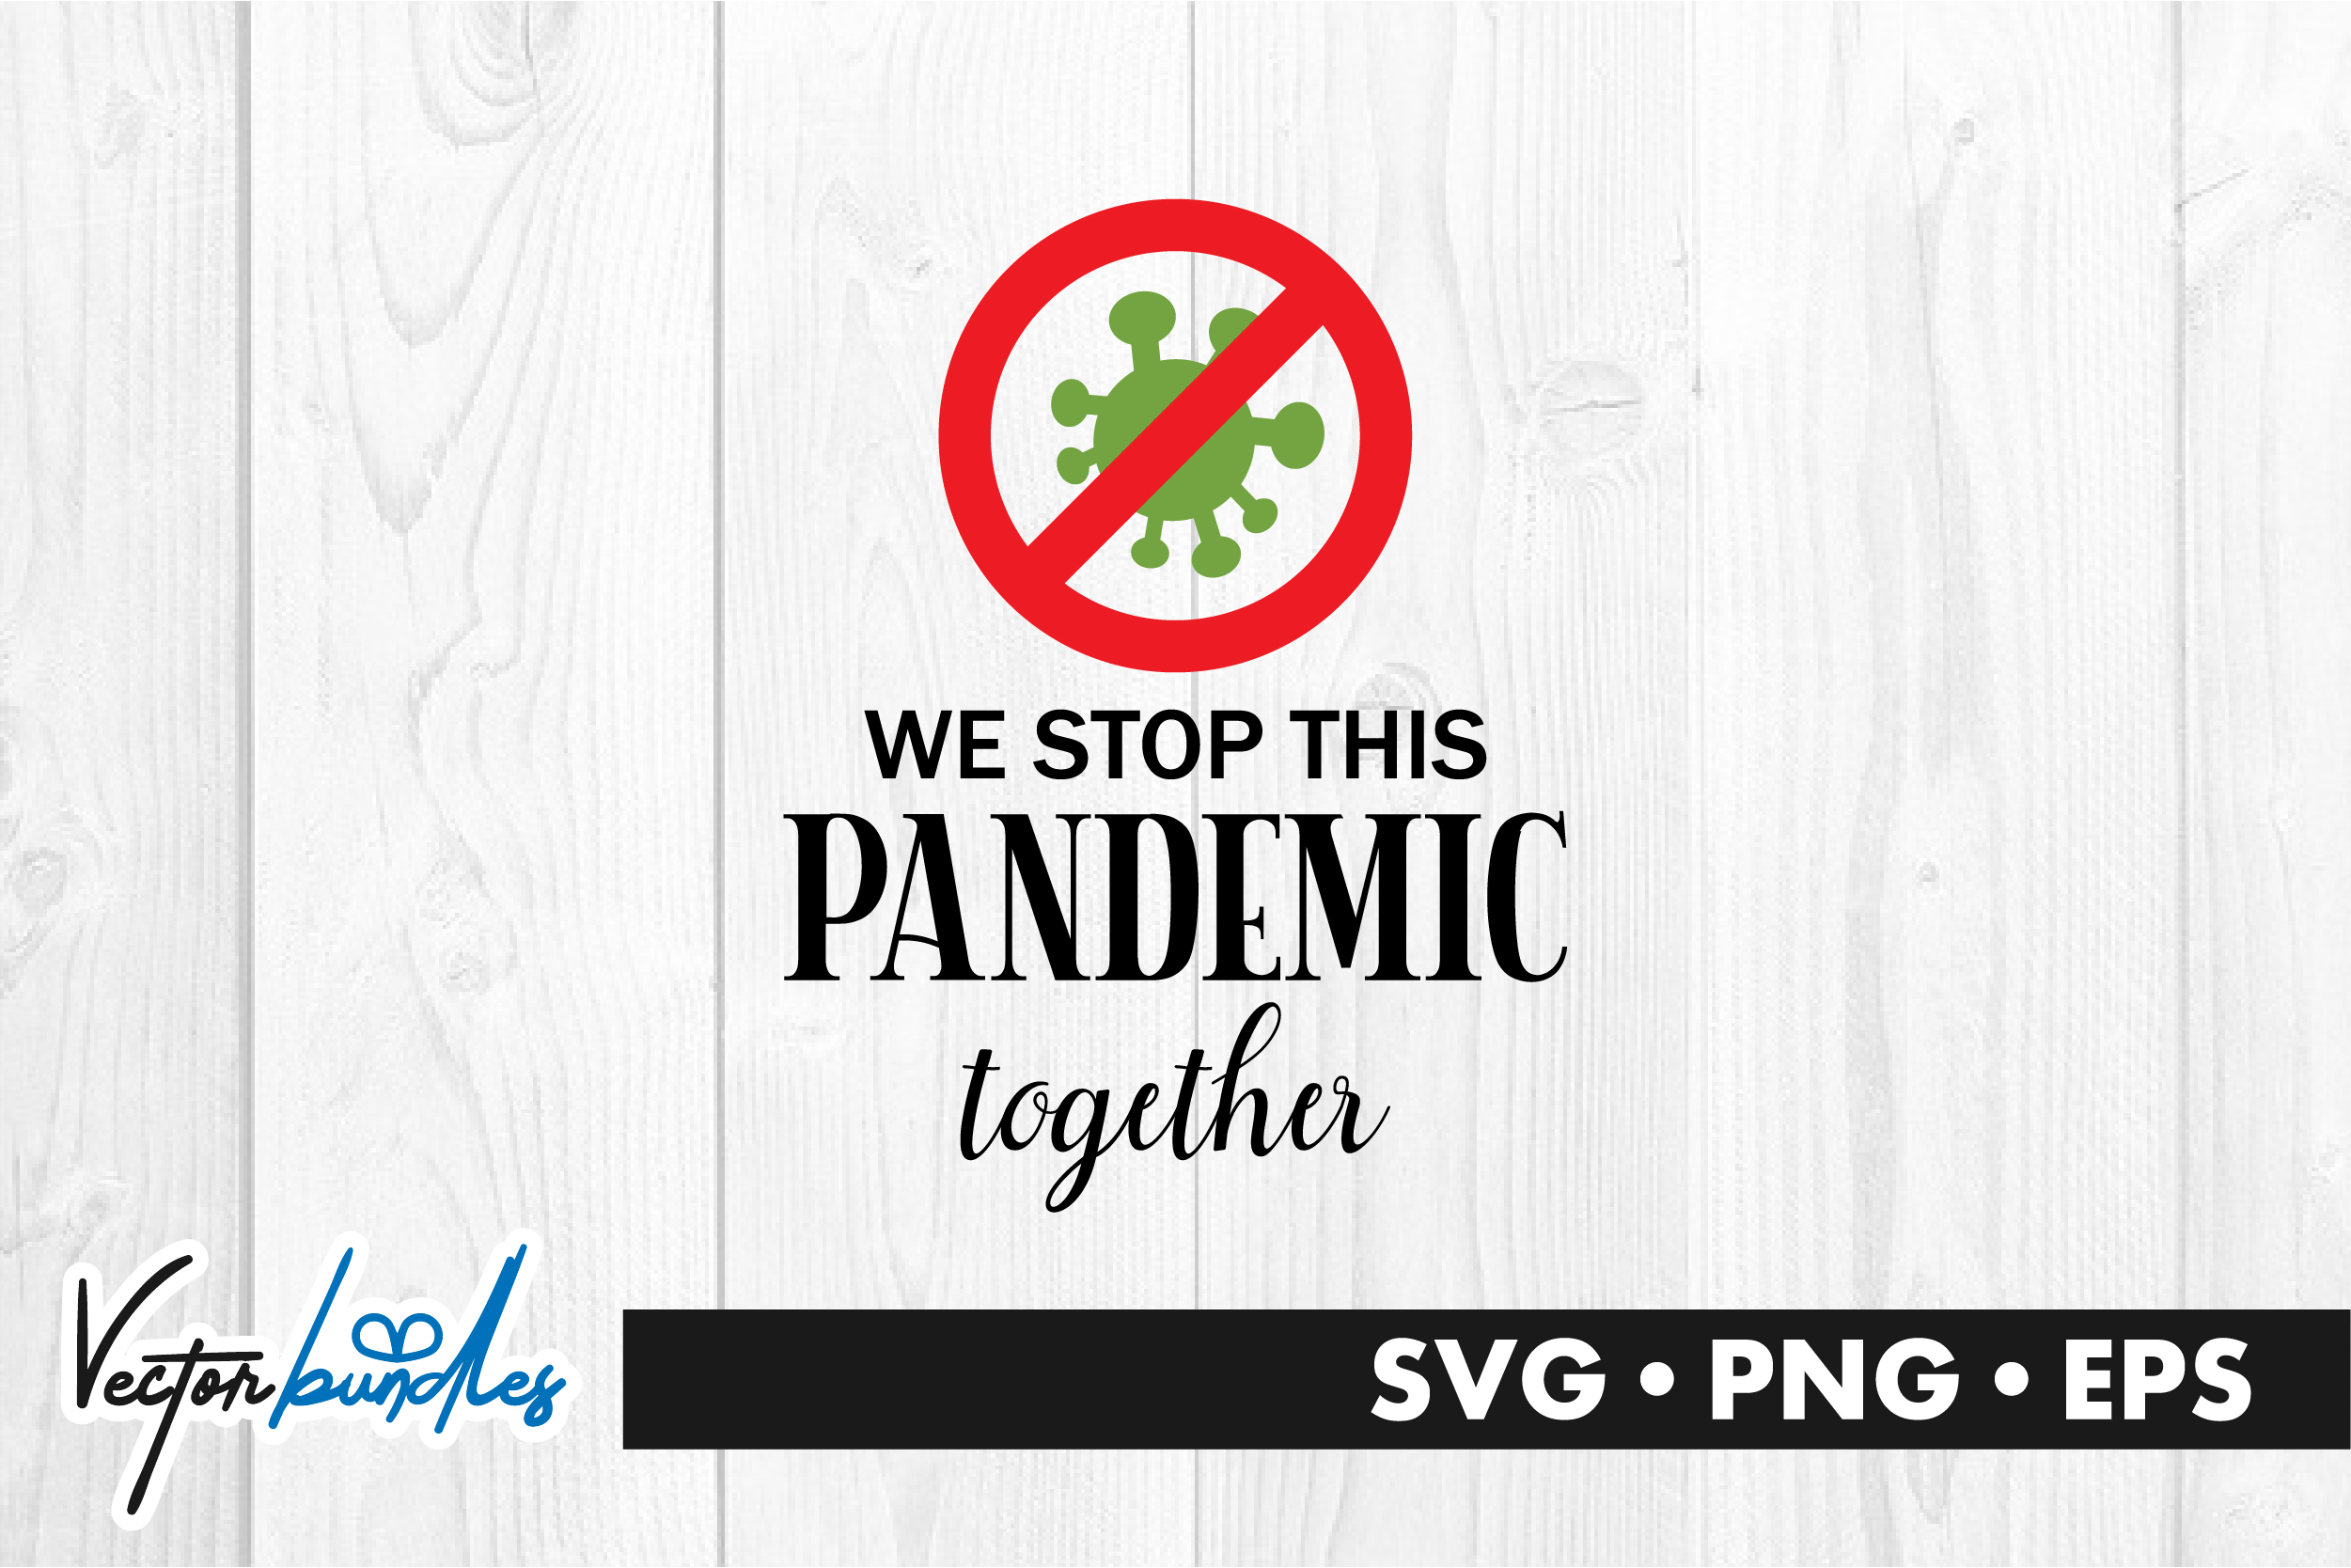 Download Free We Stop This Pandemic Quote Graphic By Vectorbundles Creative for Cricut Explore, Silhouette and other cutting machines.